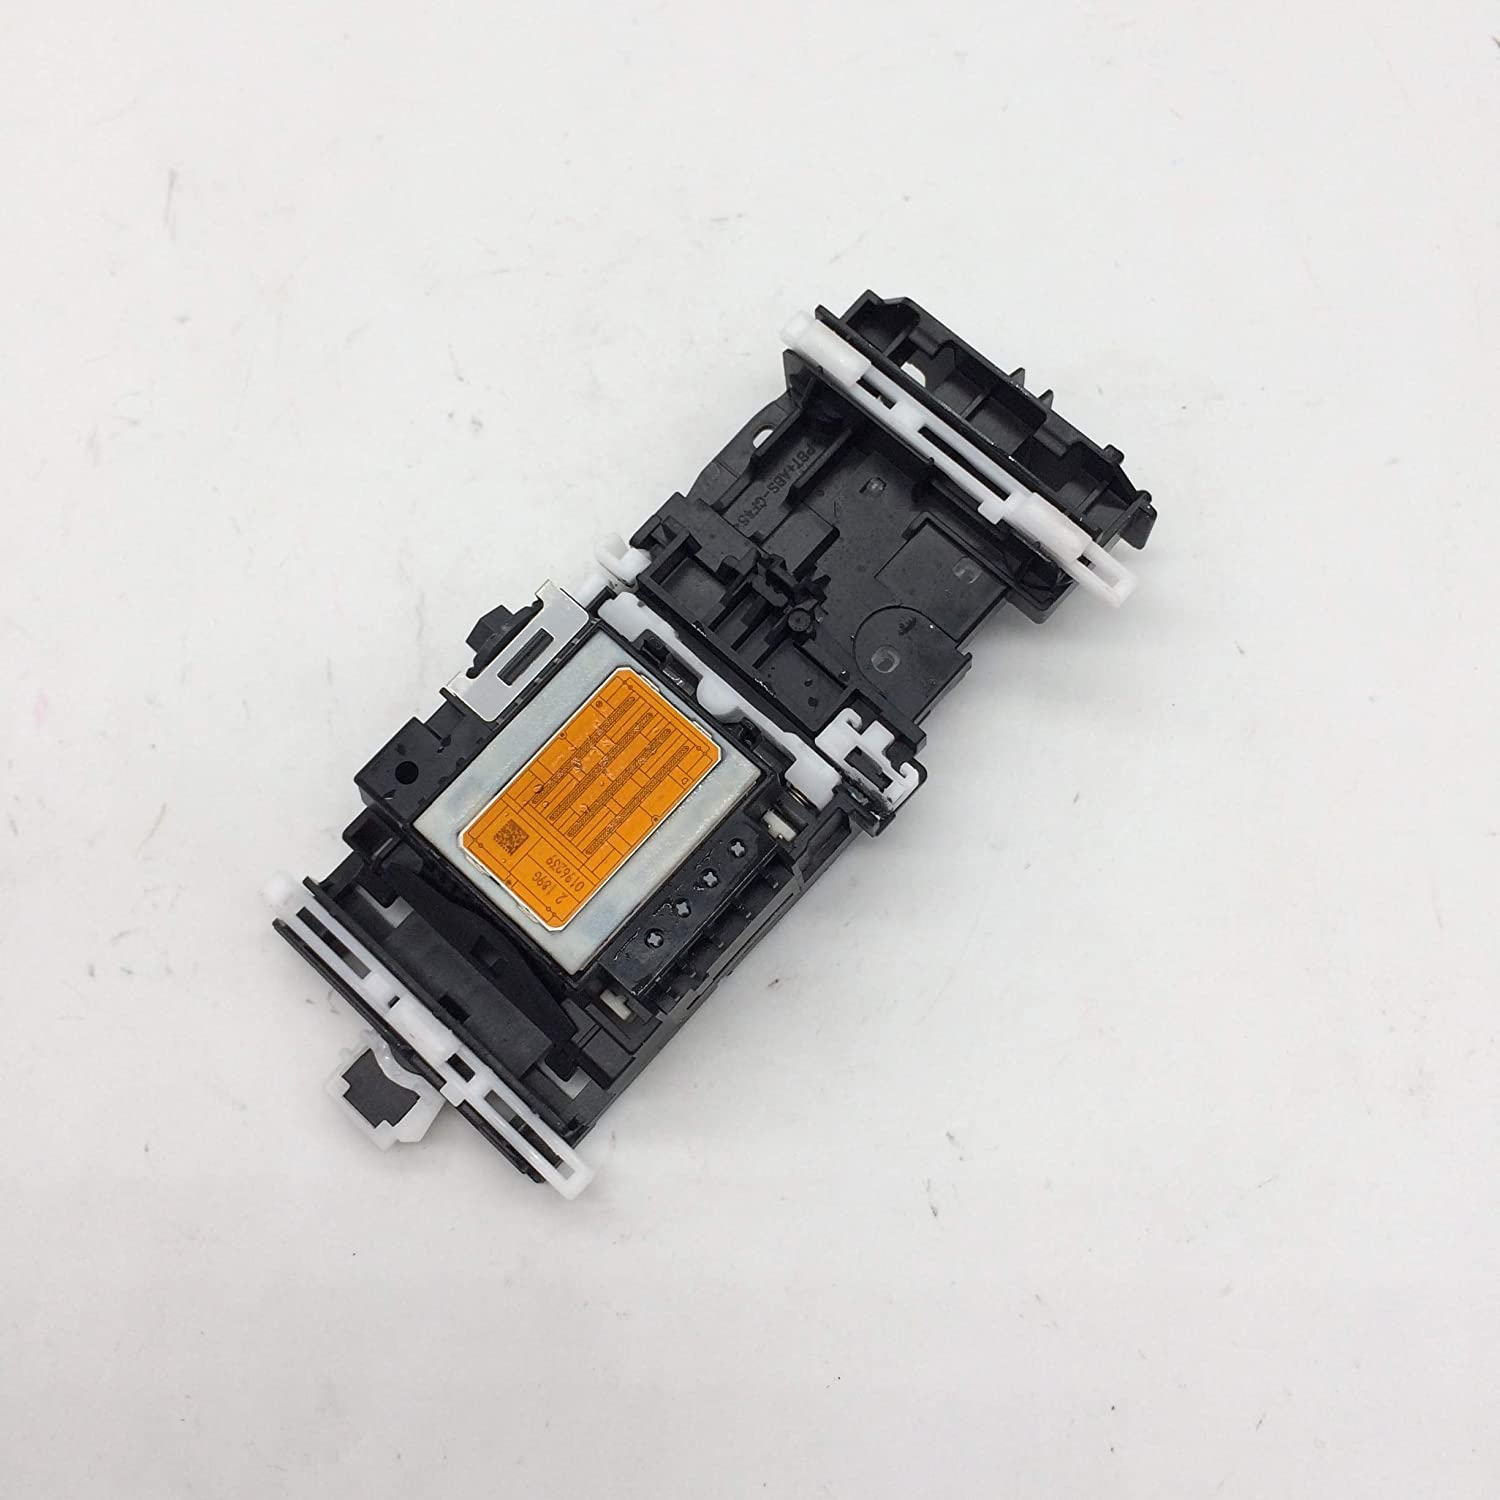 REFIT 4 Color Print Head 990A4 for Brother MFC-255CW J220 J315//J195 MFC-990CW MFC-5490 255 495 795 J415 J125 J410 Printer Head